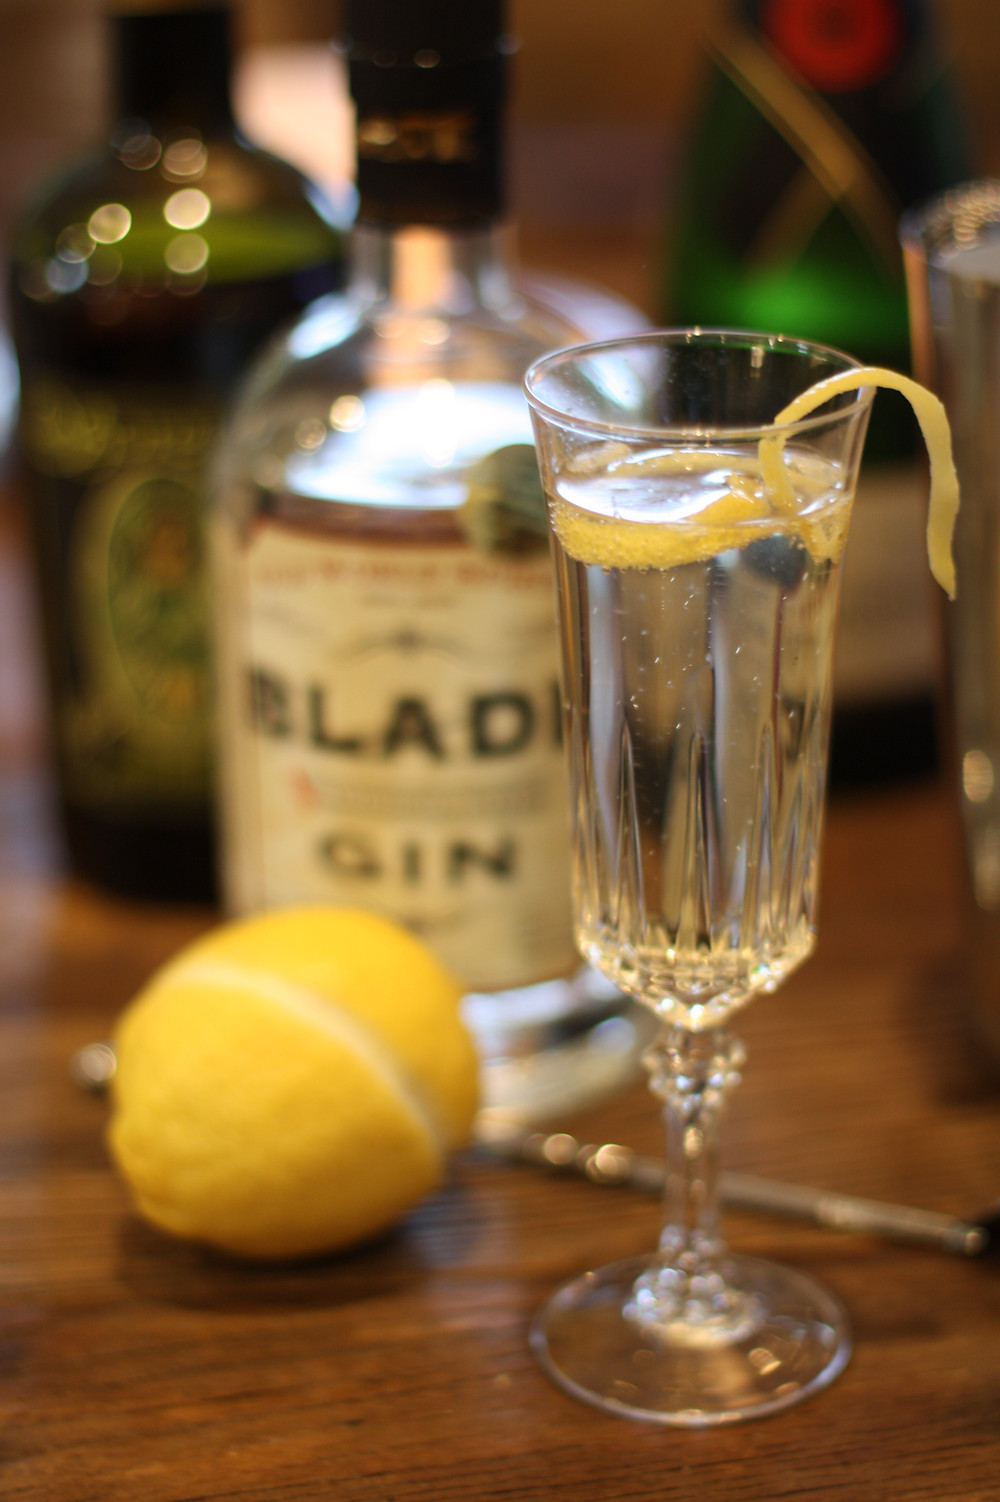 Blade Gin French 75 Cocktail